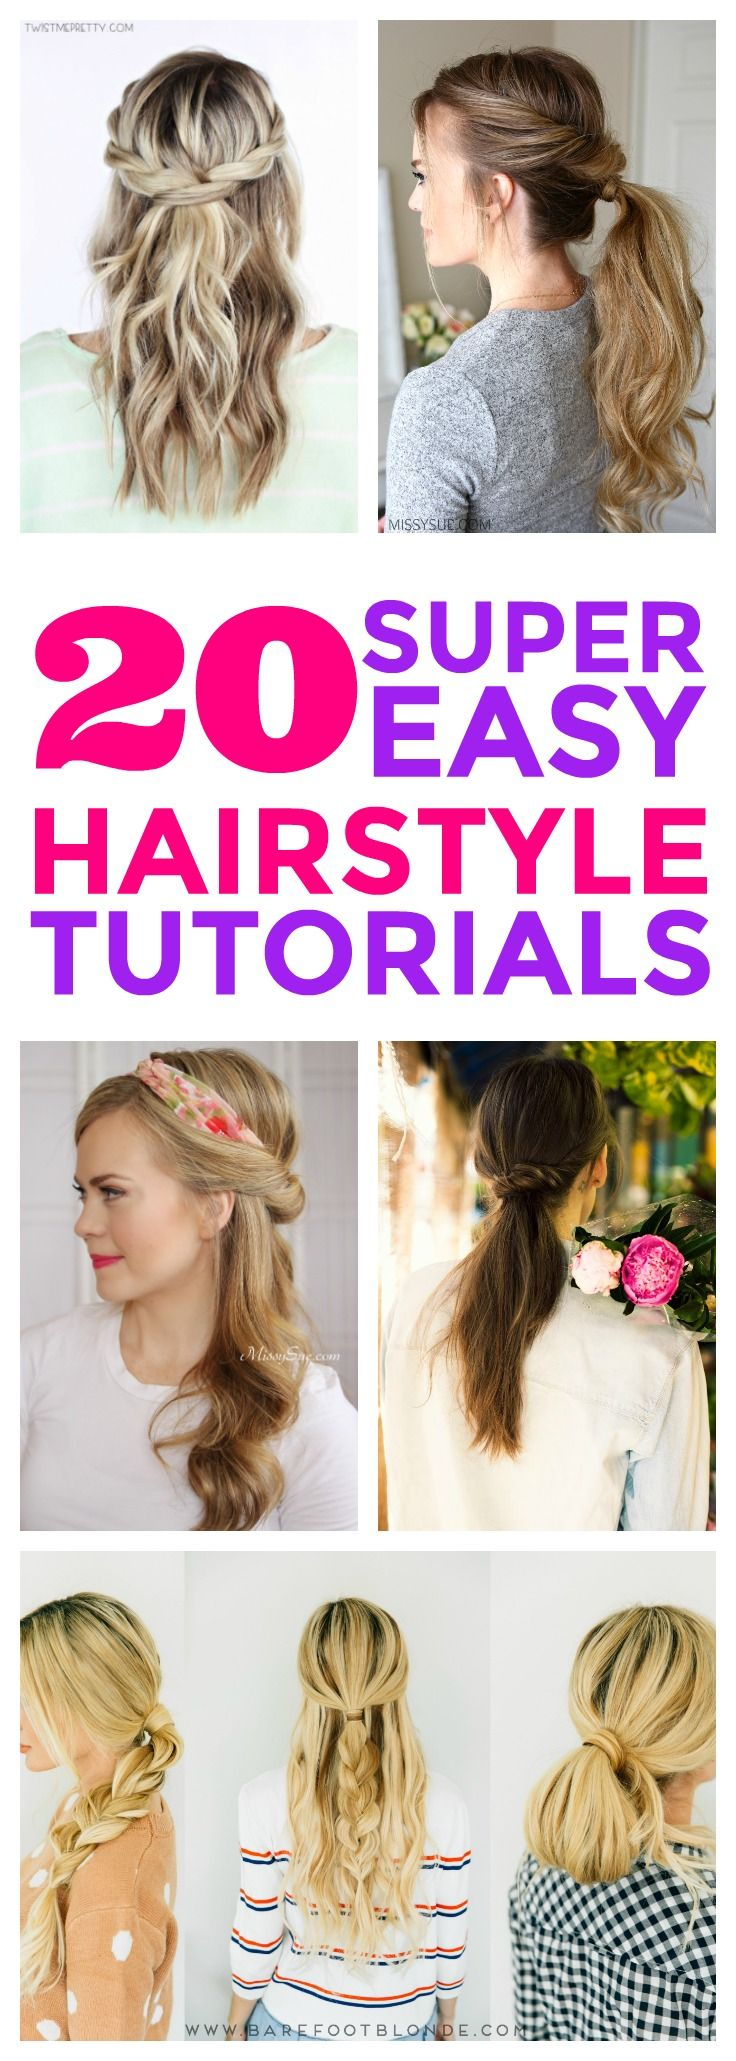 These easy hairstyles are so CUTE! I'm so happy I found these QUICK hair tutorials ! Now i have some great step by step hair ideas for work or school! Simple hair styles great for beginners! Definitely pinning!